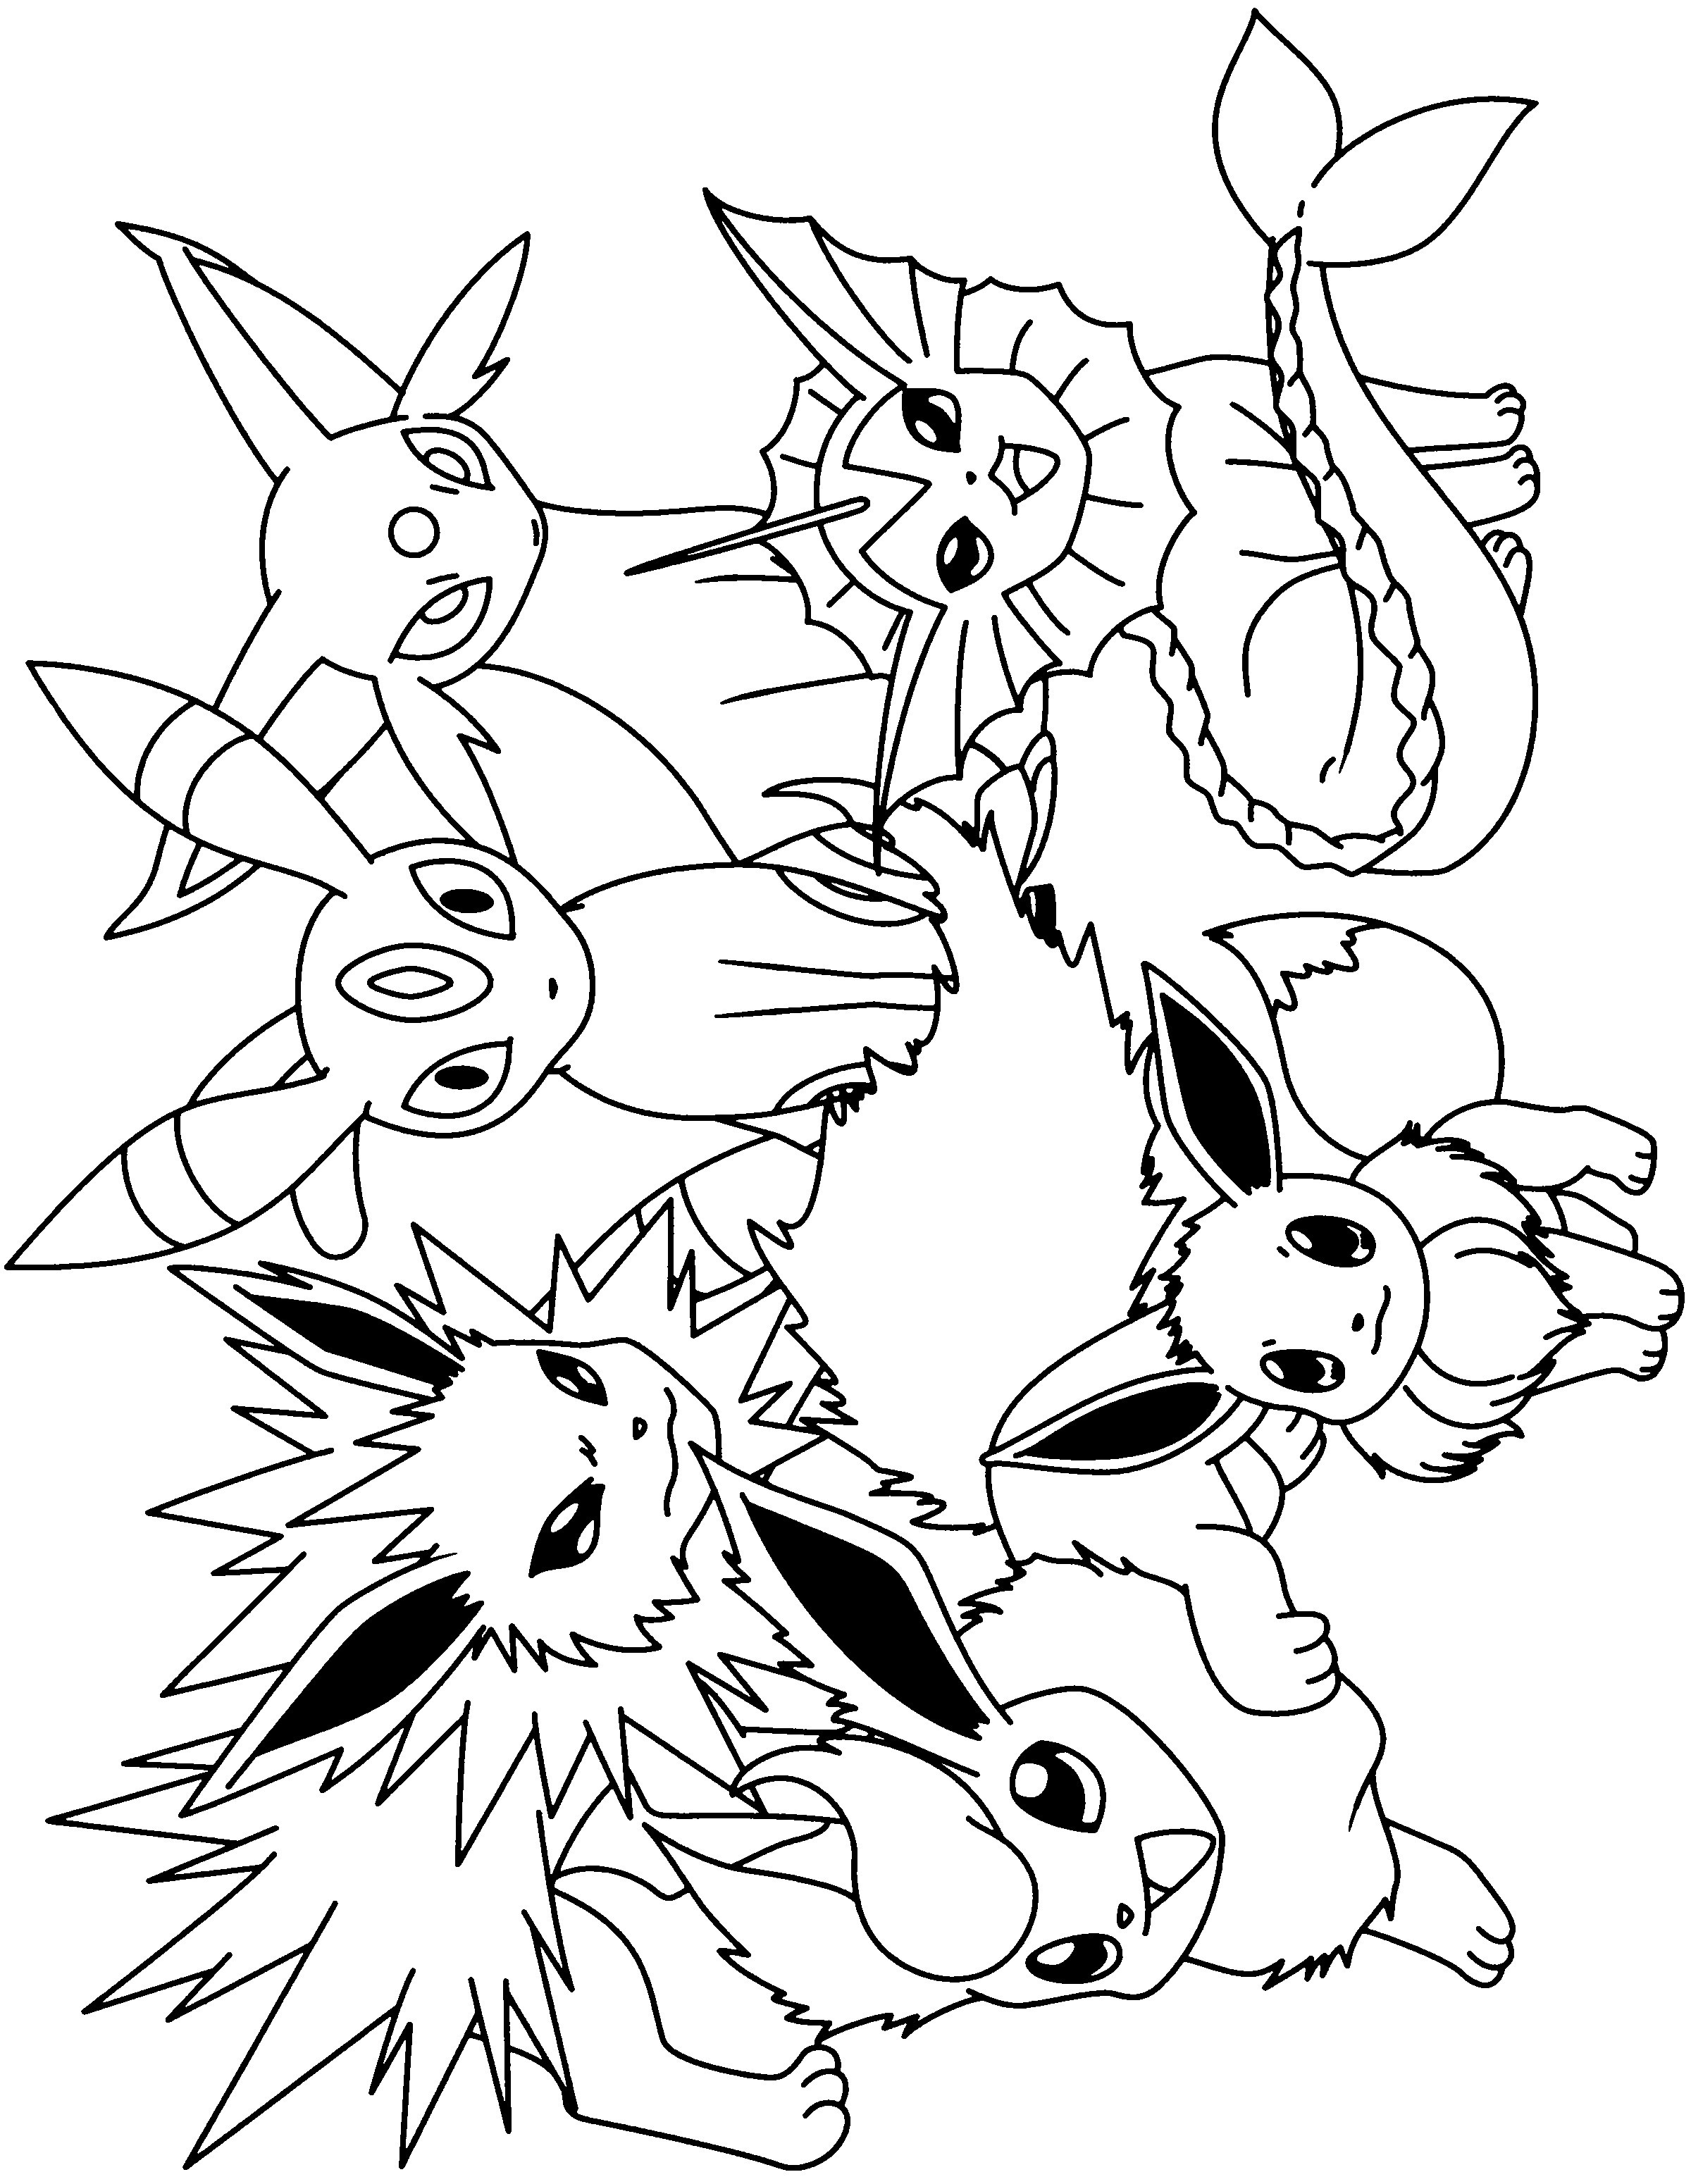 pokemon colouring in coloring pages pokémon animated images gifs pictures pokemon colouring in